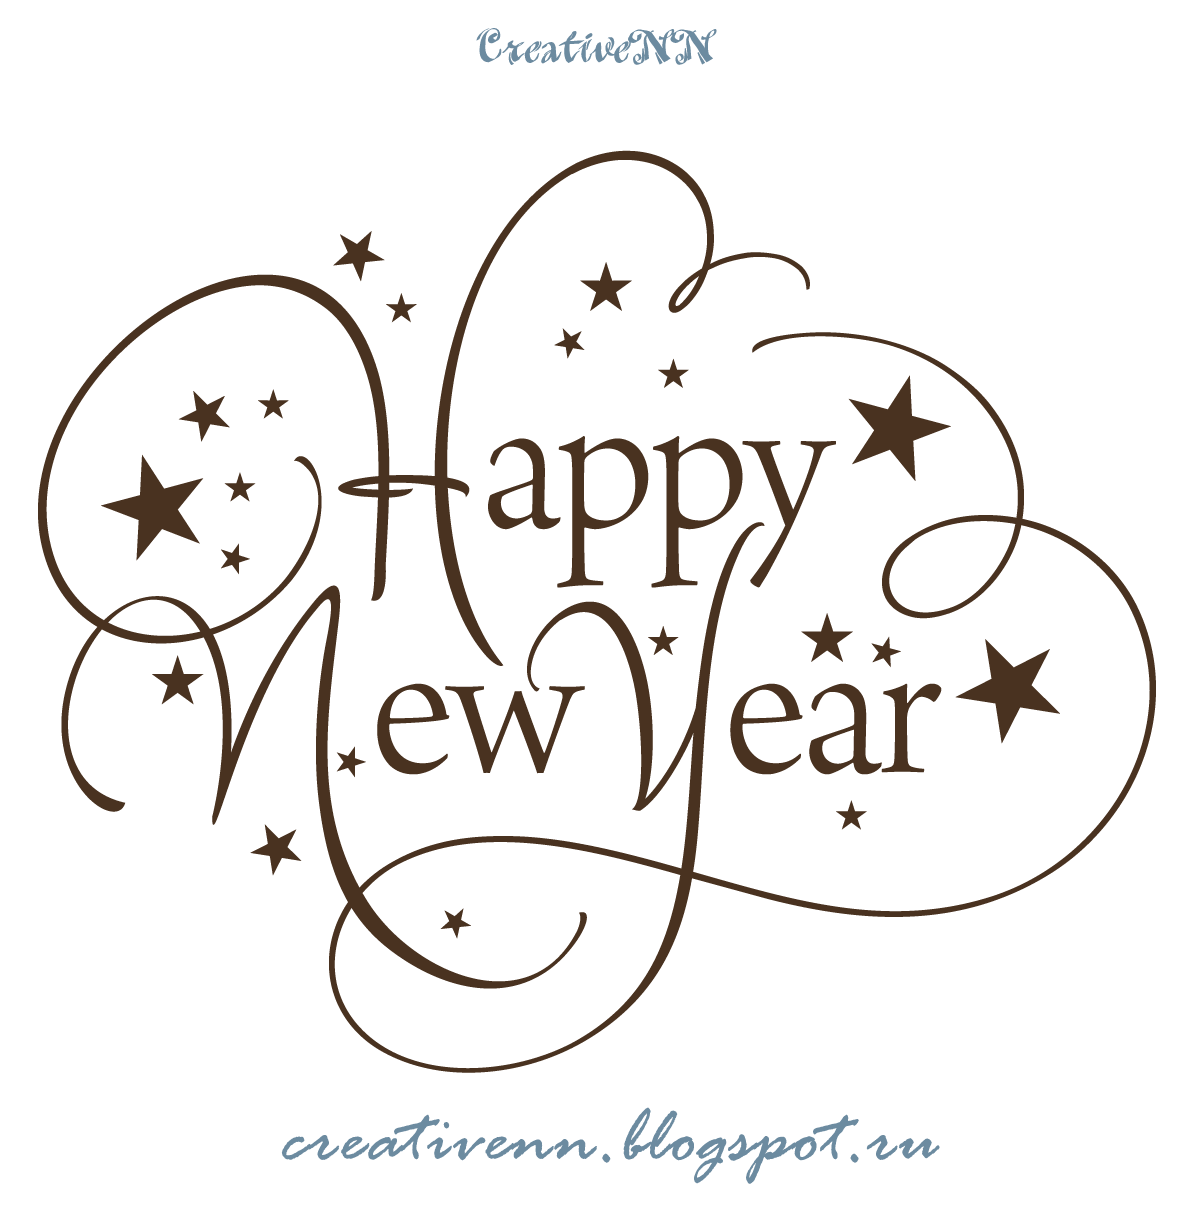 Merry christmas word art google search happy new year merry christmas word art google search happy new year greetingshappy m4hsunfo Image collections